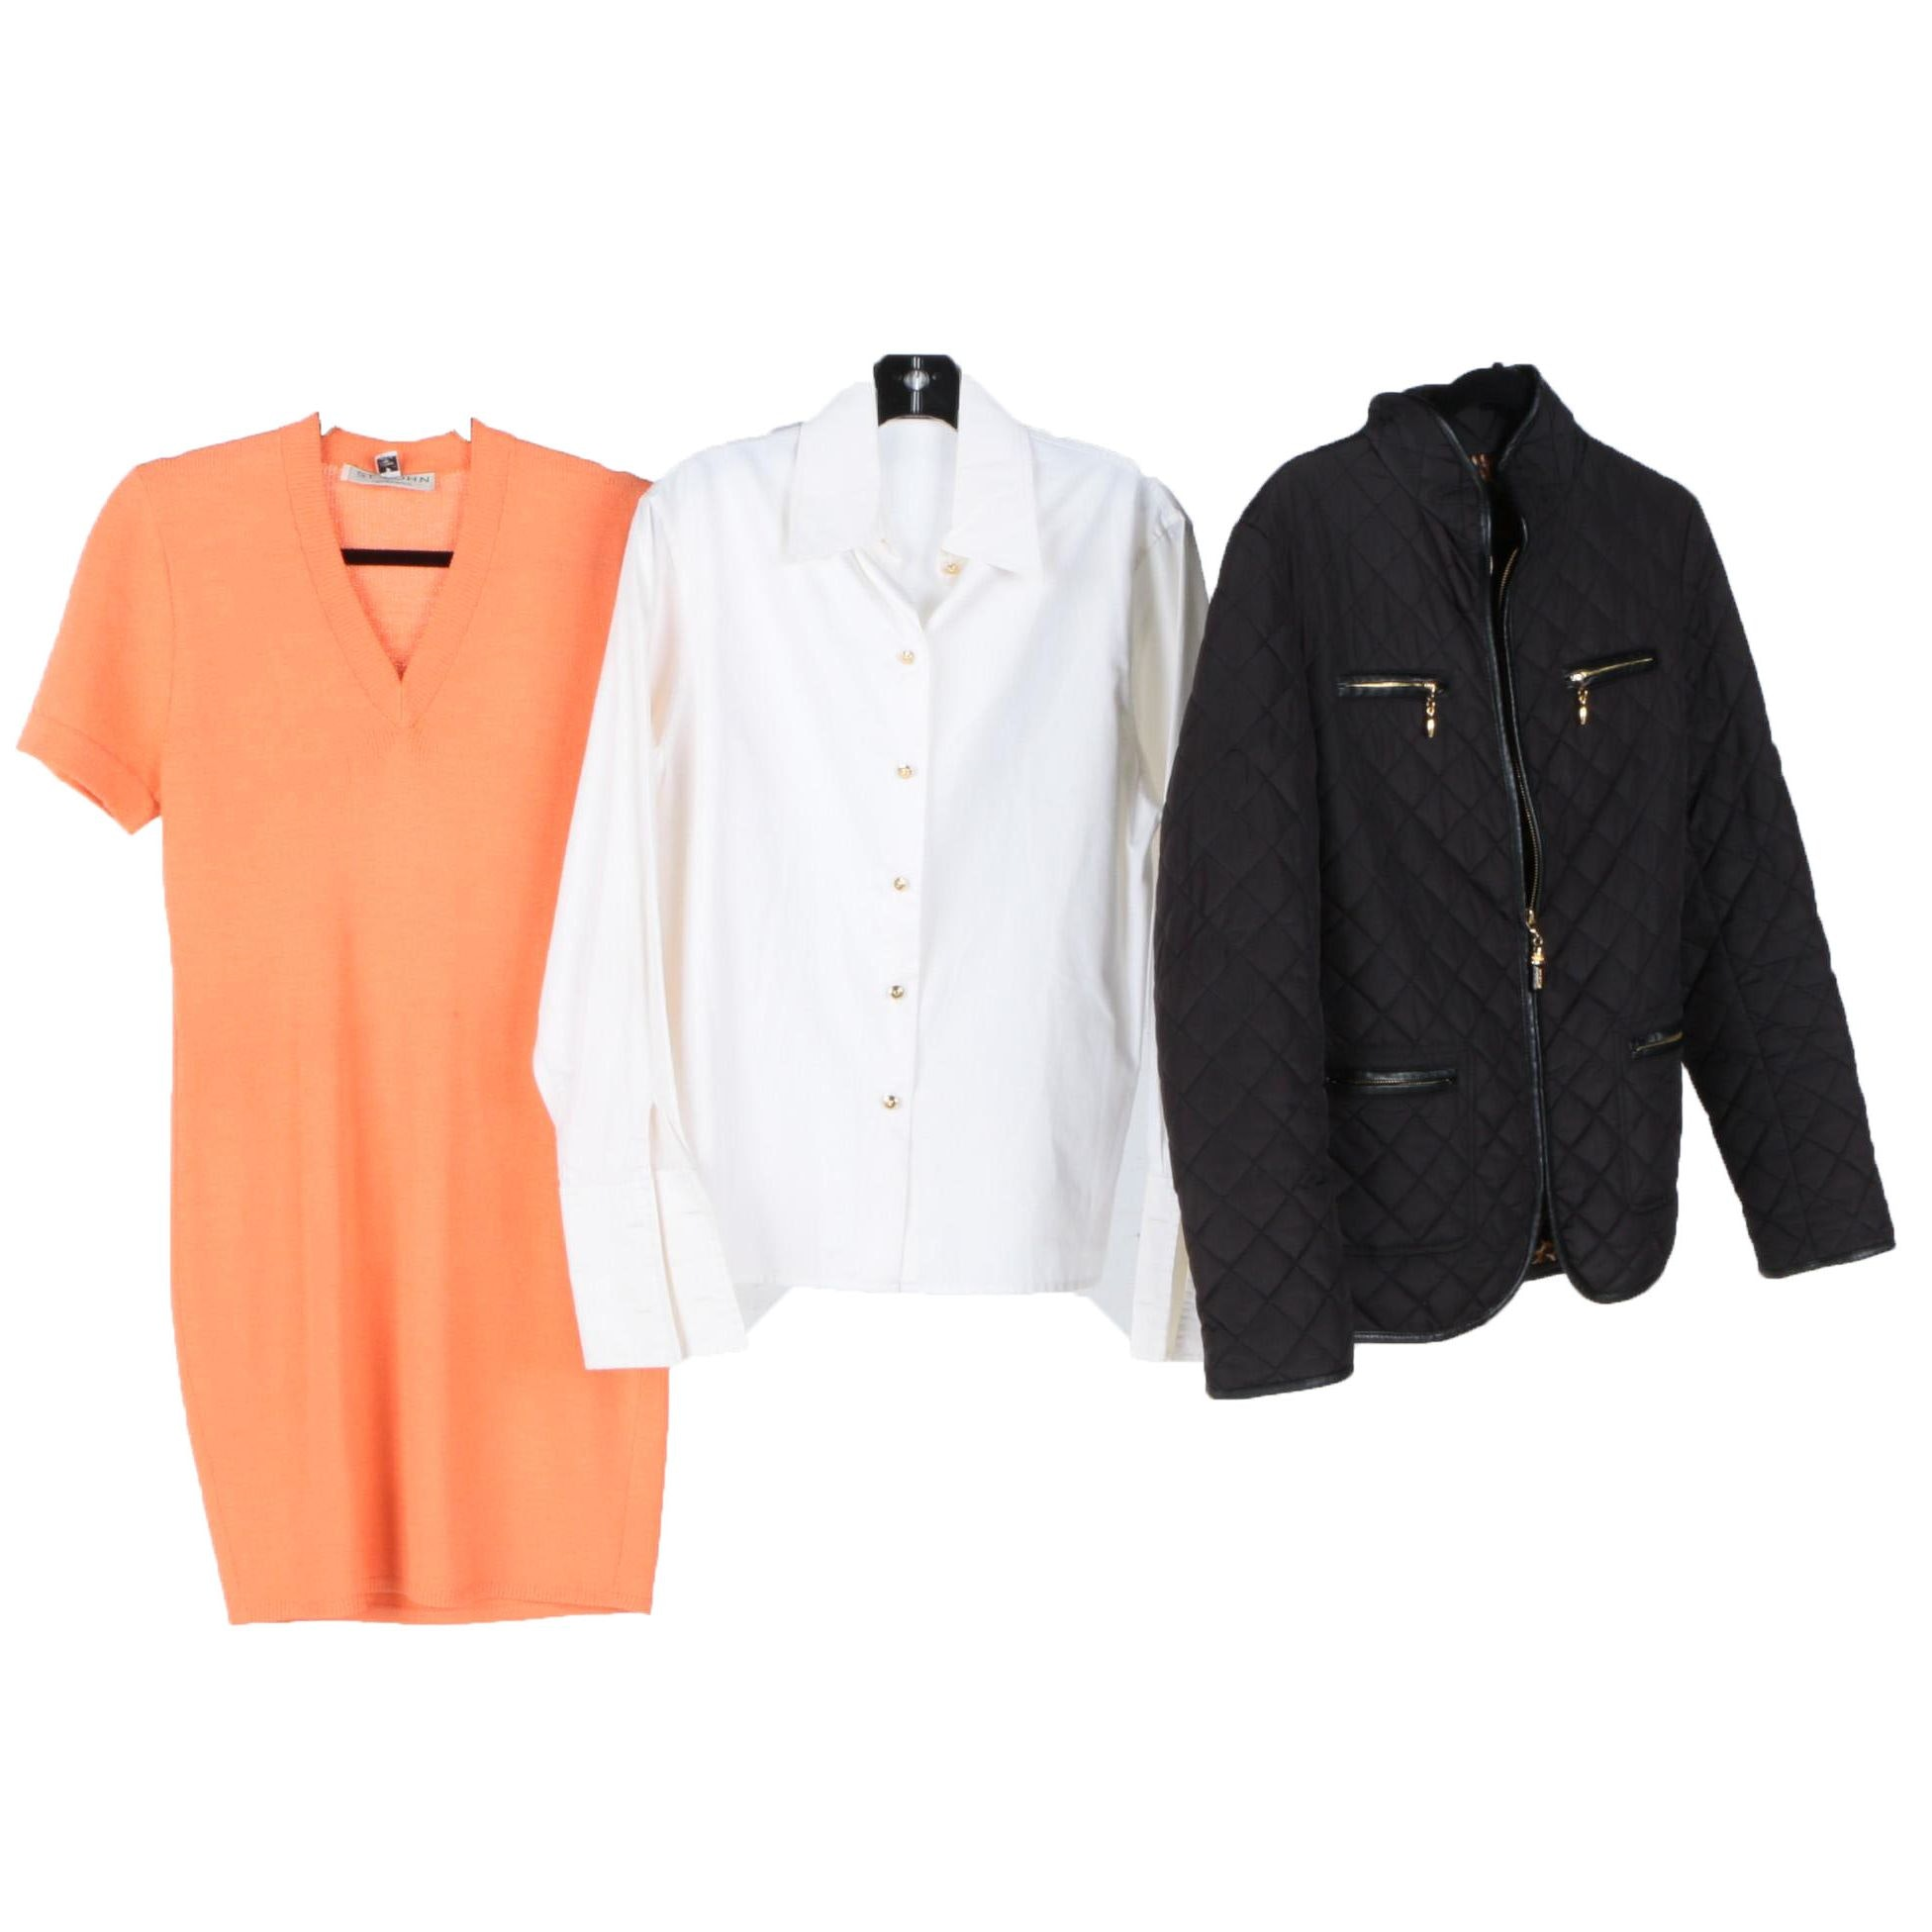 Women's St. John Clothing